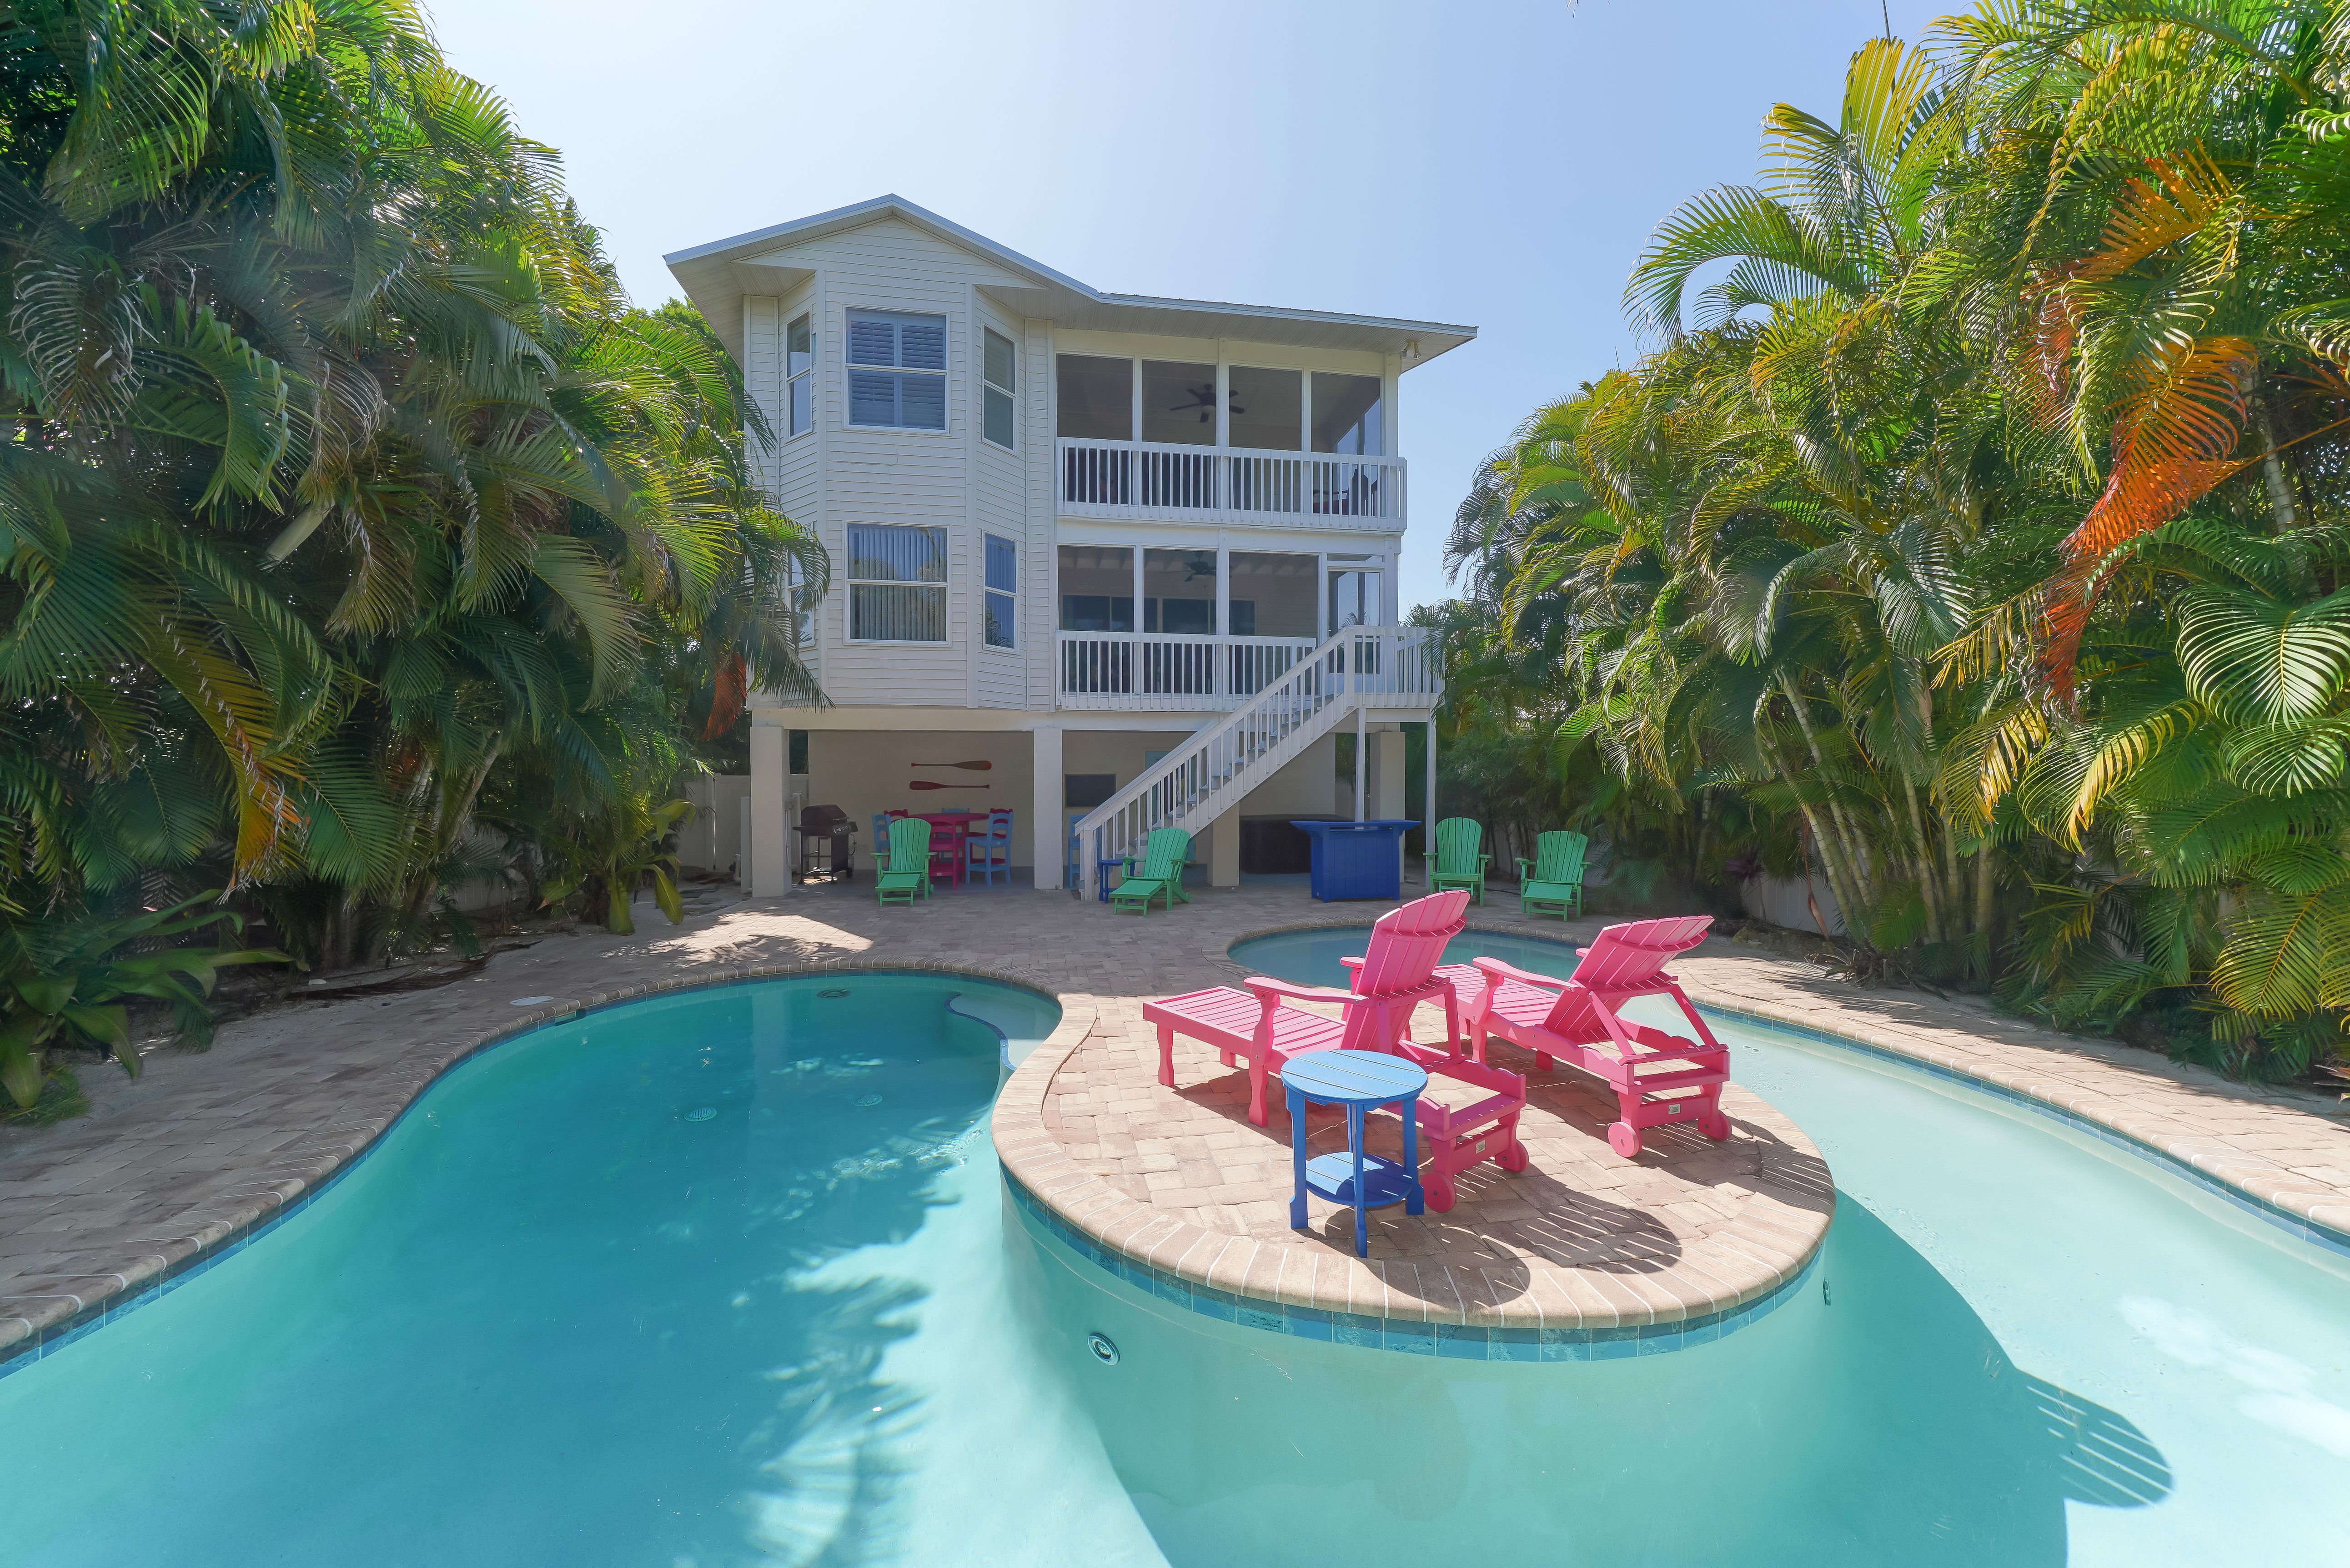 Lighthouse Lagoon Pet Friendly 5 Bedroom Vacation House Rental Anna Maria Island Fl With Pool 102641 Find Rentals